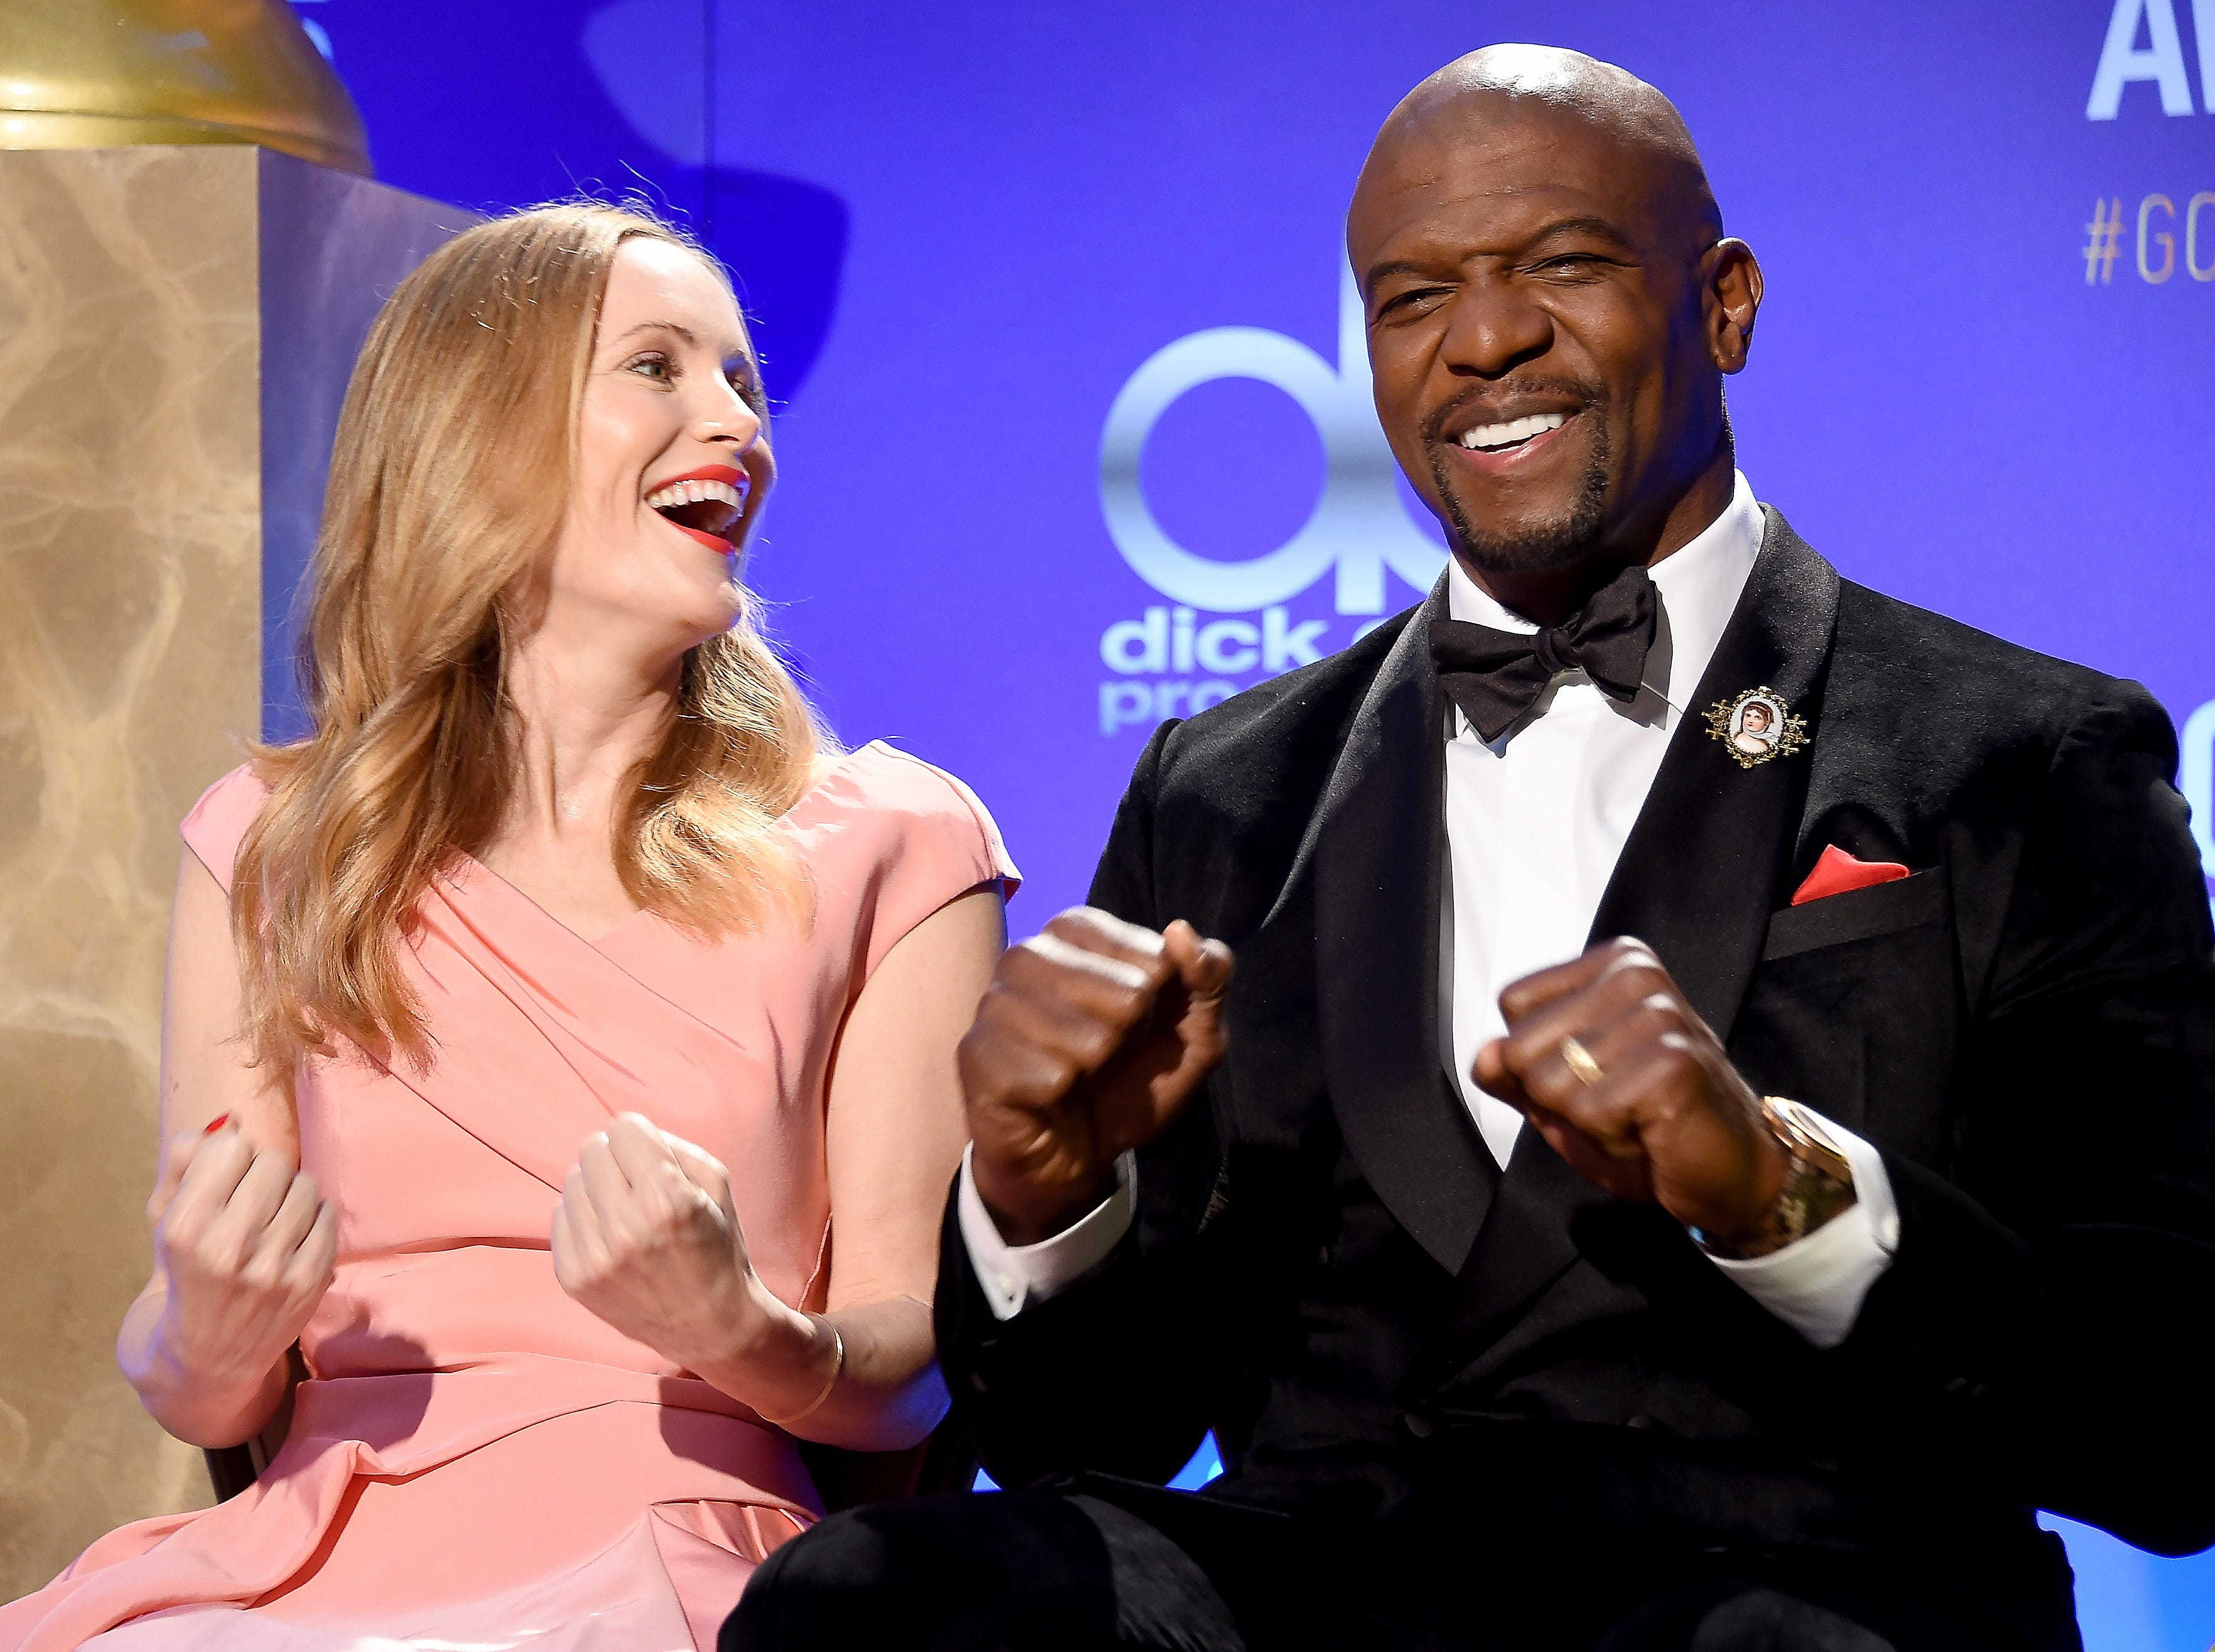 LOS ANGELES, CA - DECEMBER 06:  Leslie Mann and Terry Crews attend the 76th Annual Golden Globe Nominations Announcement on December 6, 2018 in Los Angeles, California.  (Photo by Gregg DeGuire/WireImage) ORG XMIT: 775237821 ORIG FILE ID: 1068959850